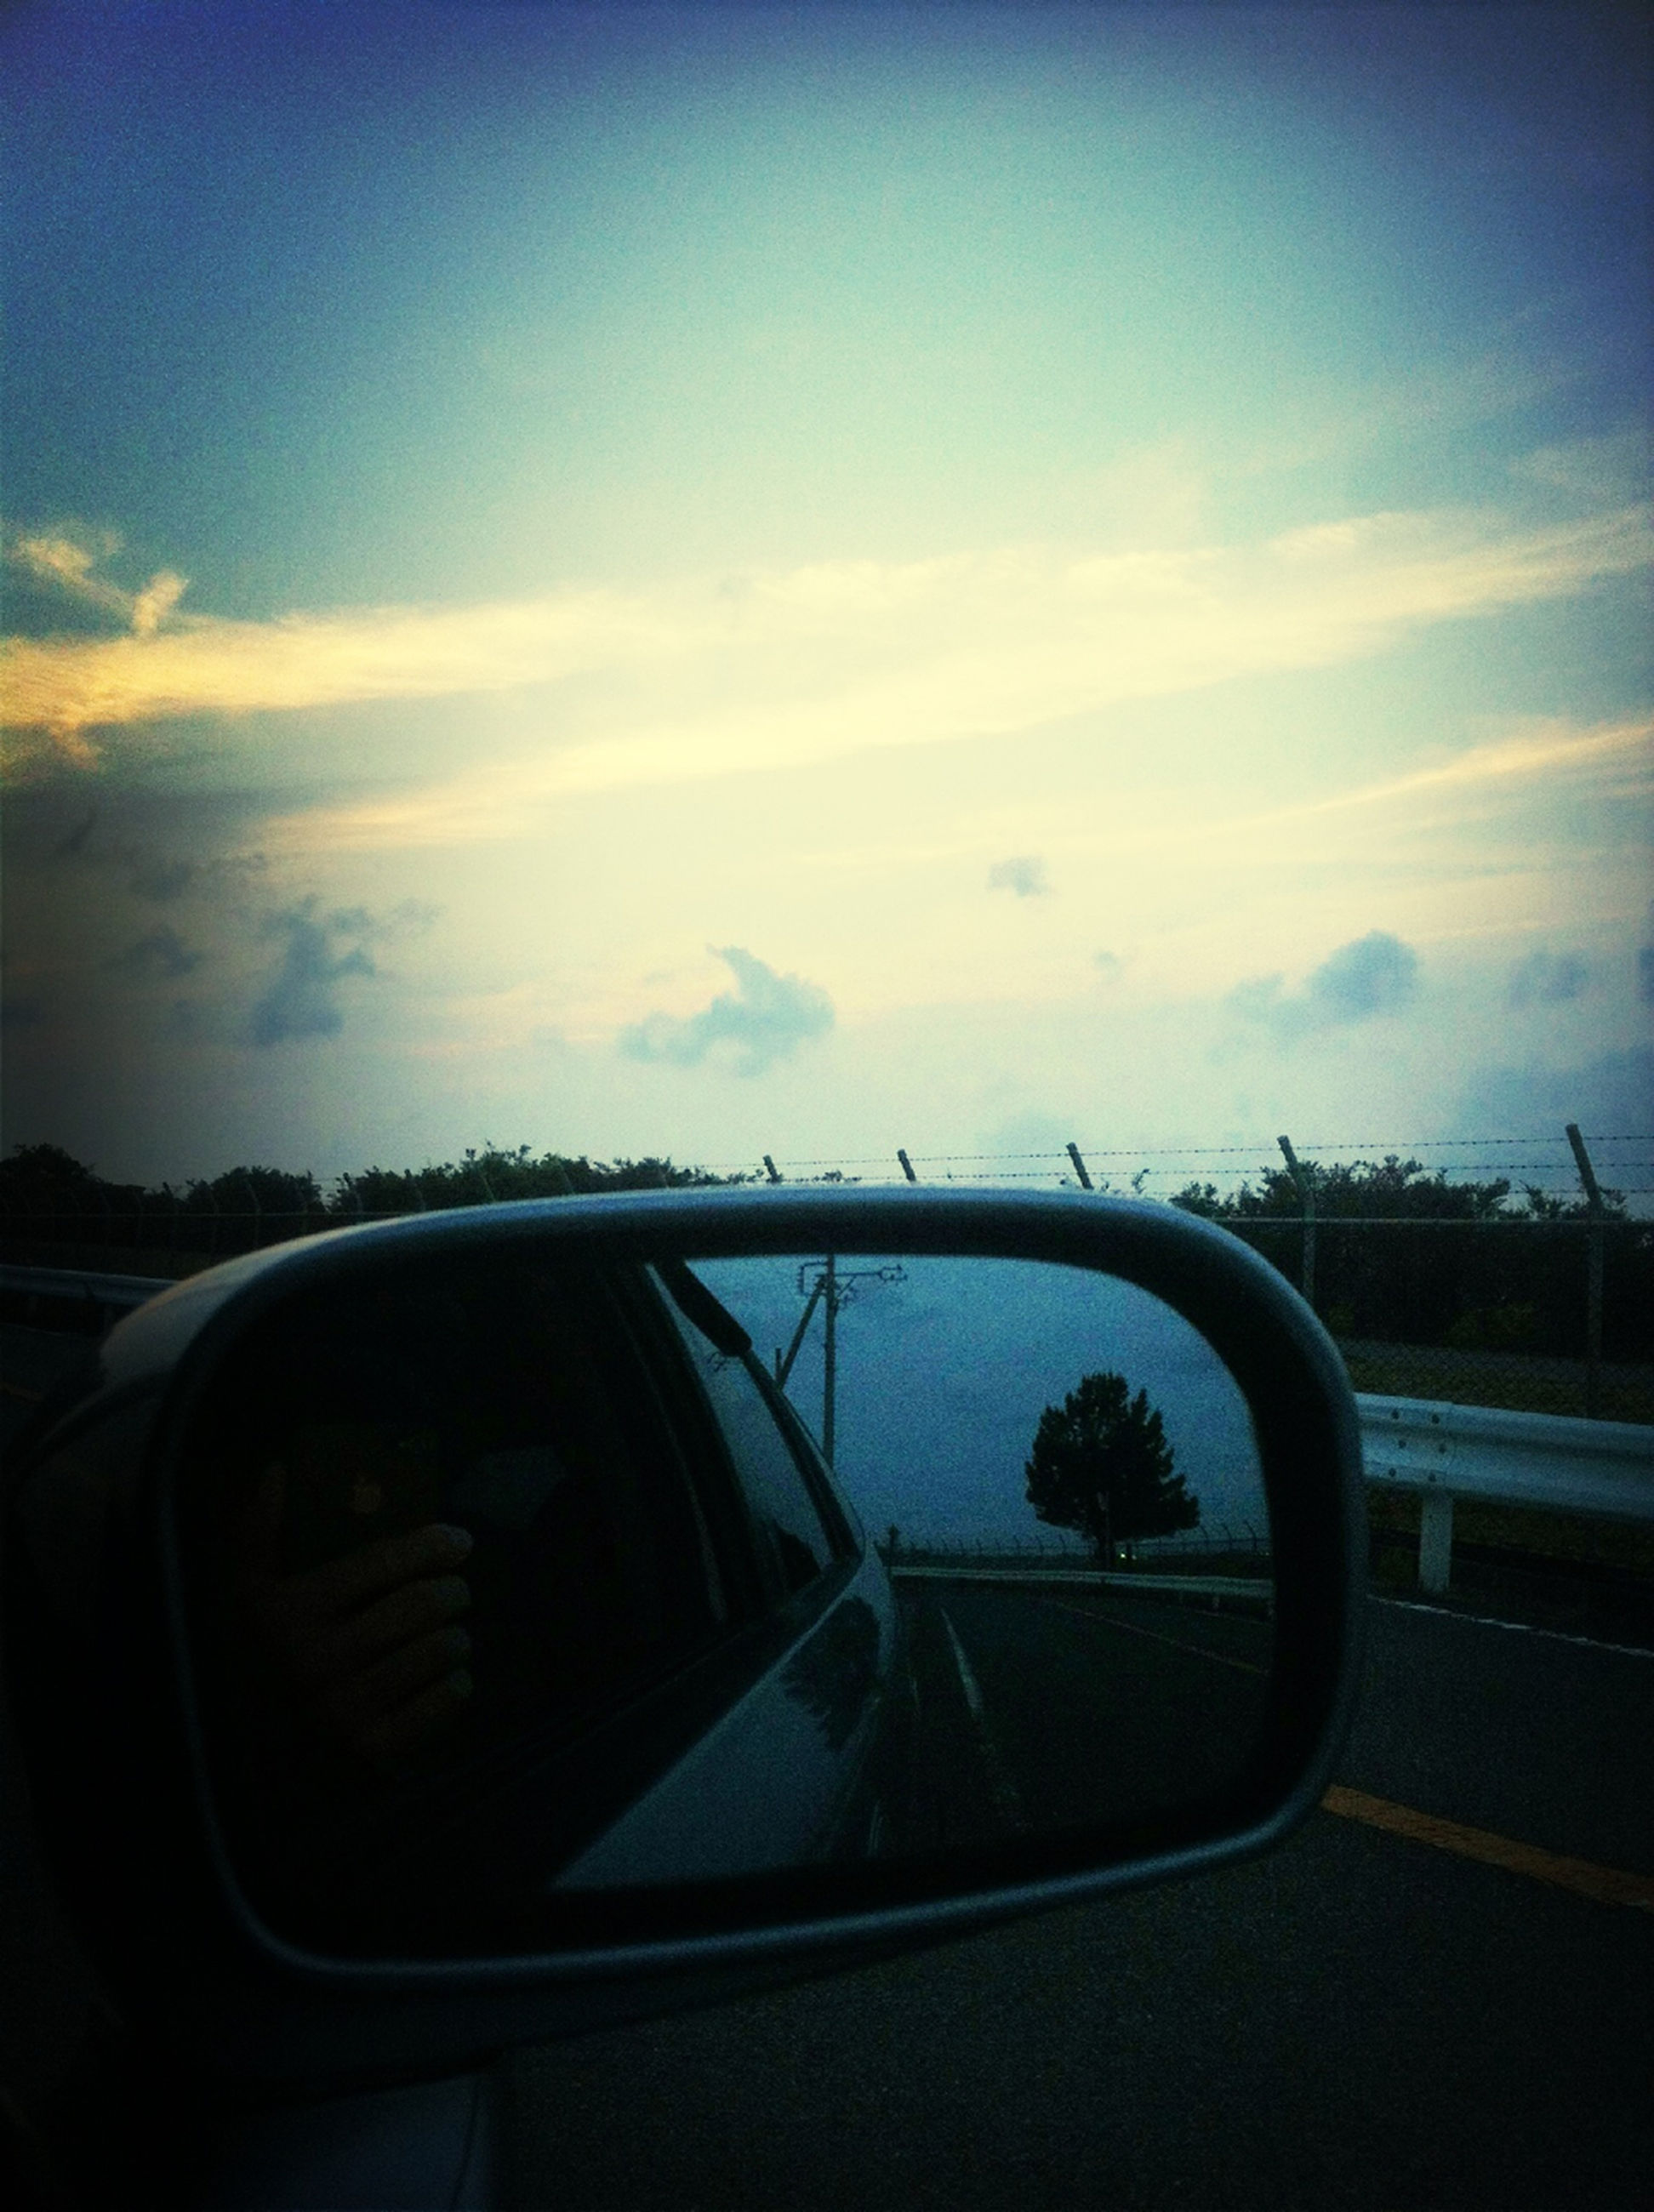 transportation, land vehicle, mode of transport, car, sky, road, sunset, cloud - sky, on the move, travel, cloud, street, side-view mirror, vehicle interior, windshield, car interior, dusk, highway, silhouette, glass - material